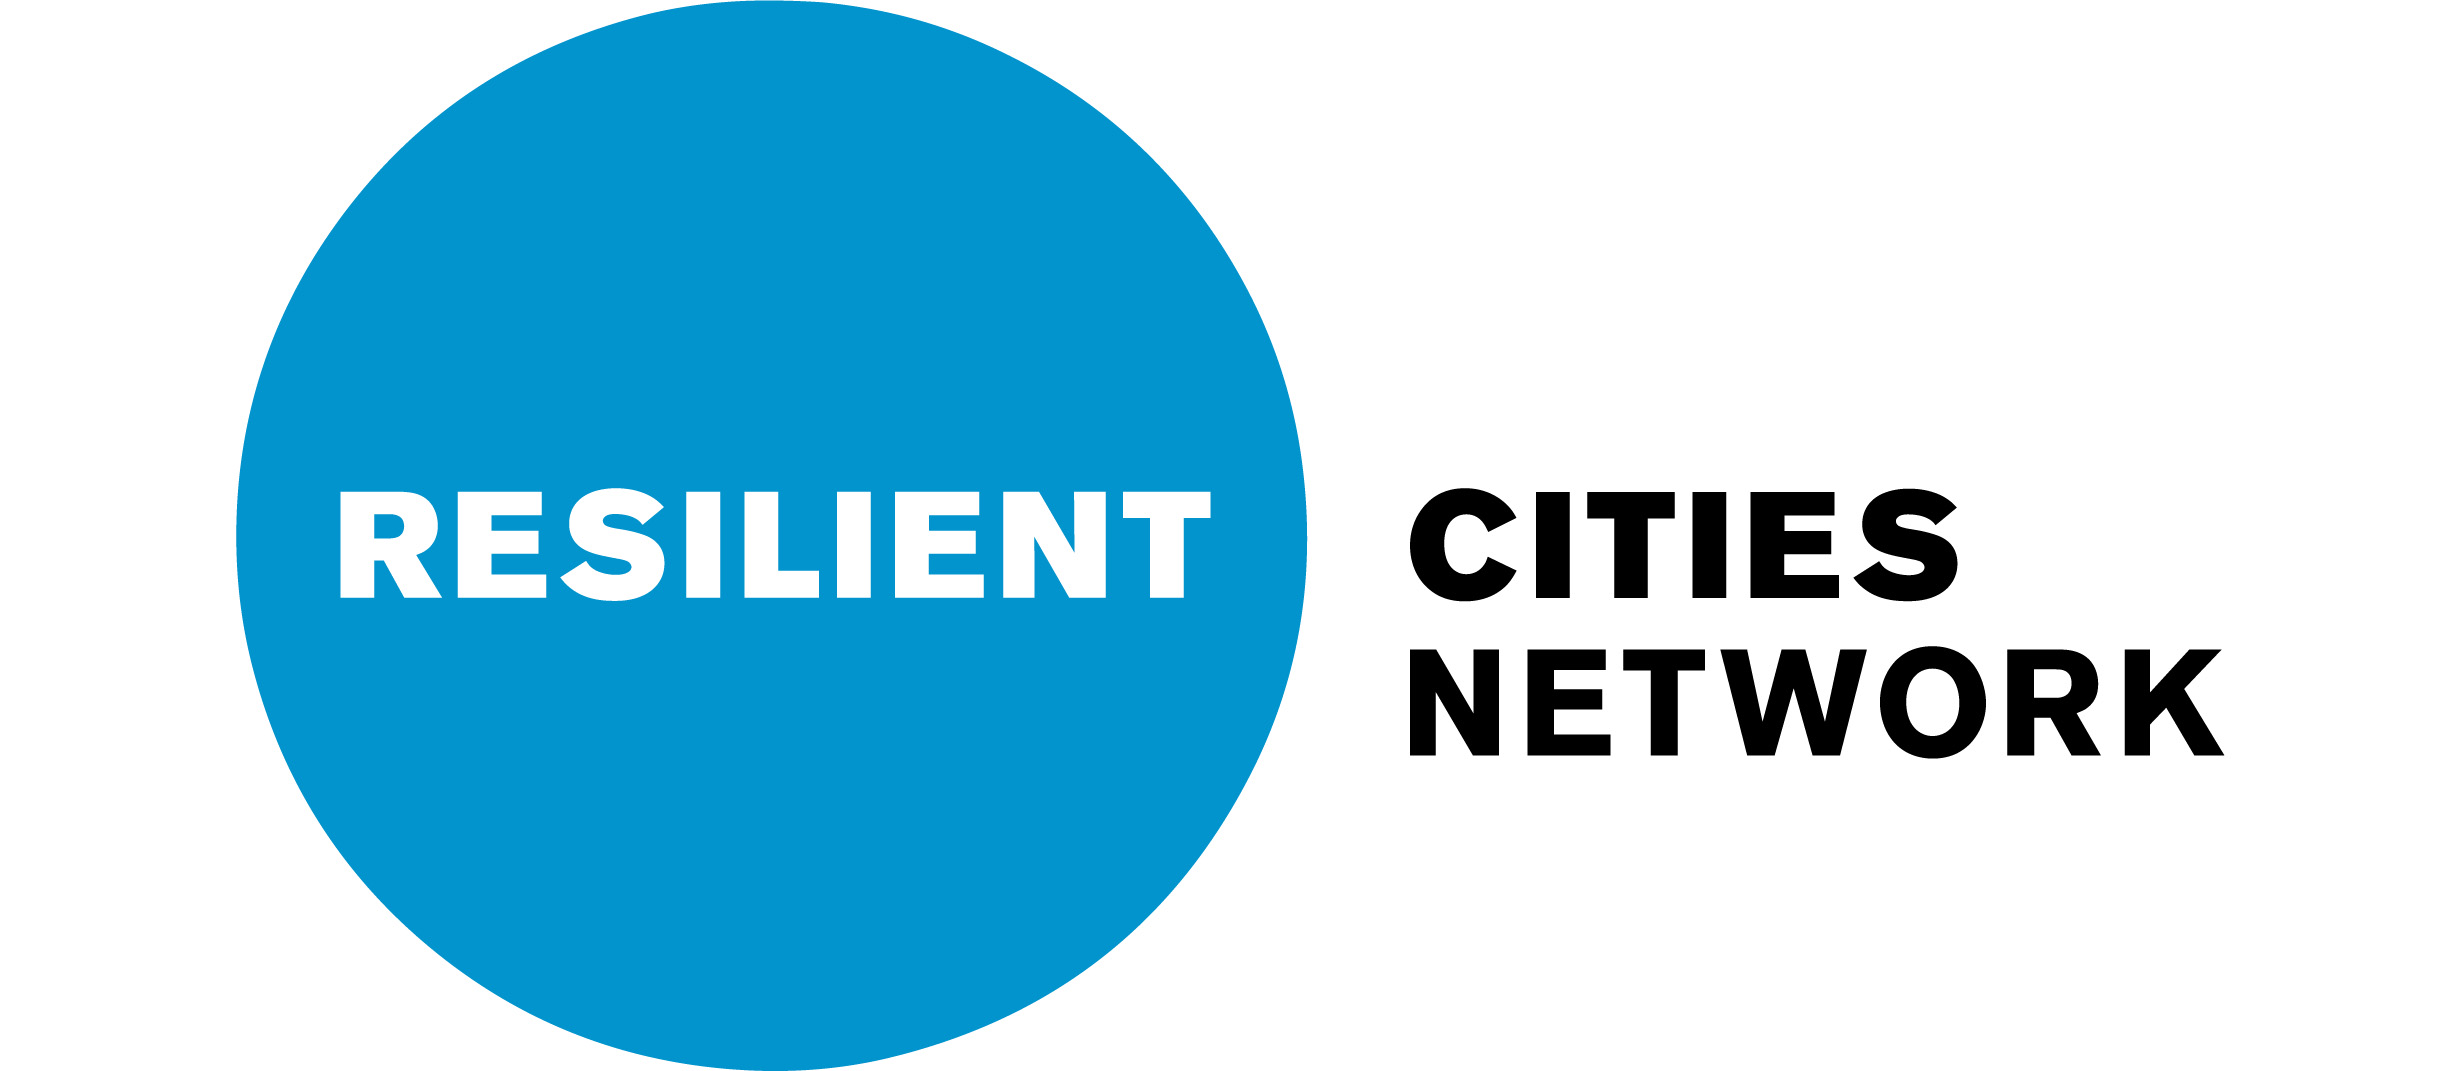 Resilient Cities Network logo 2020